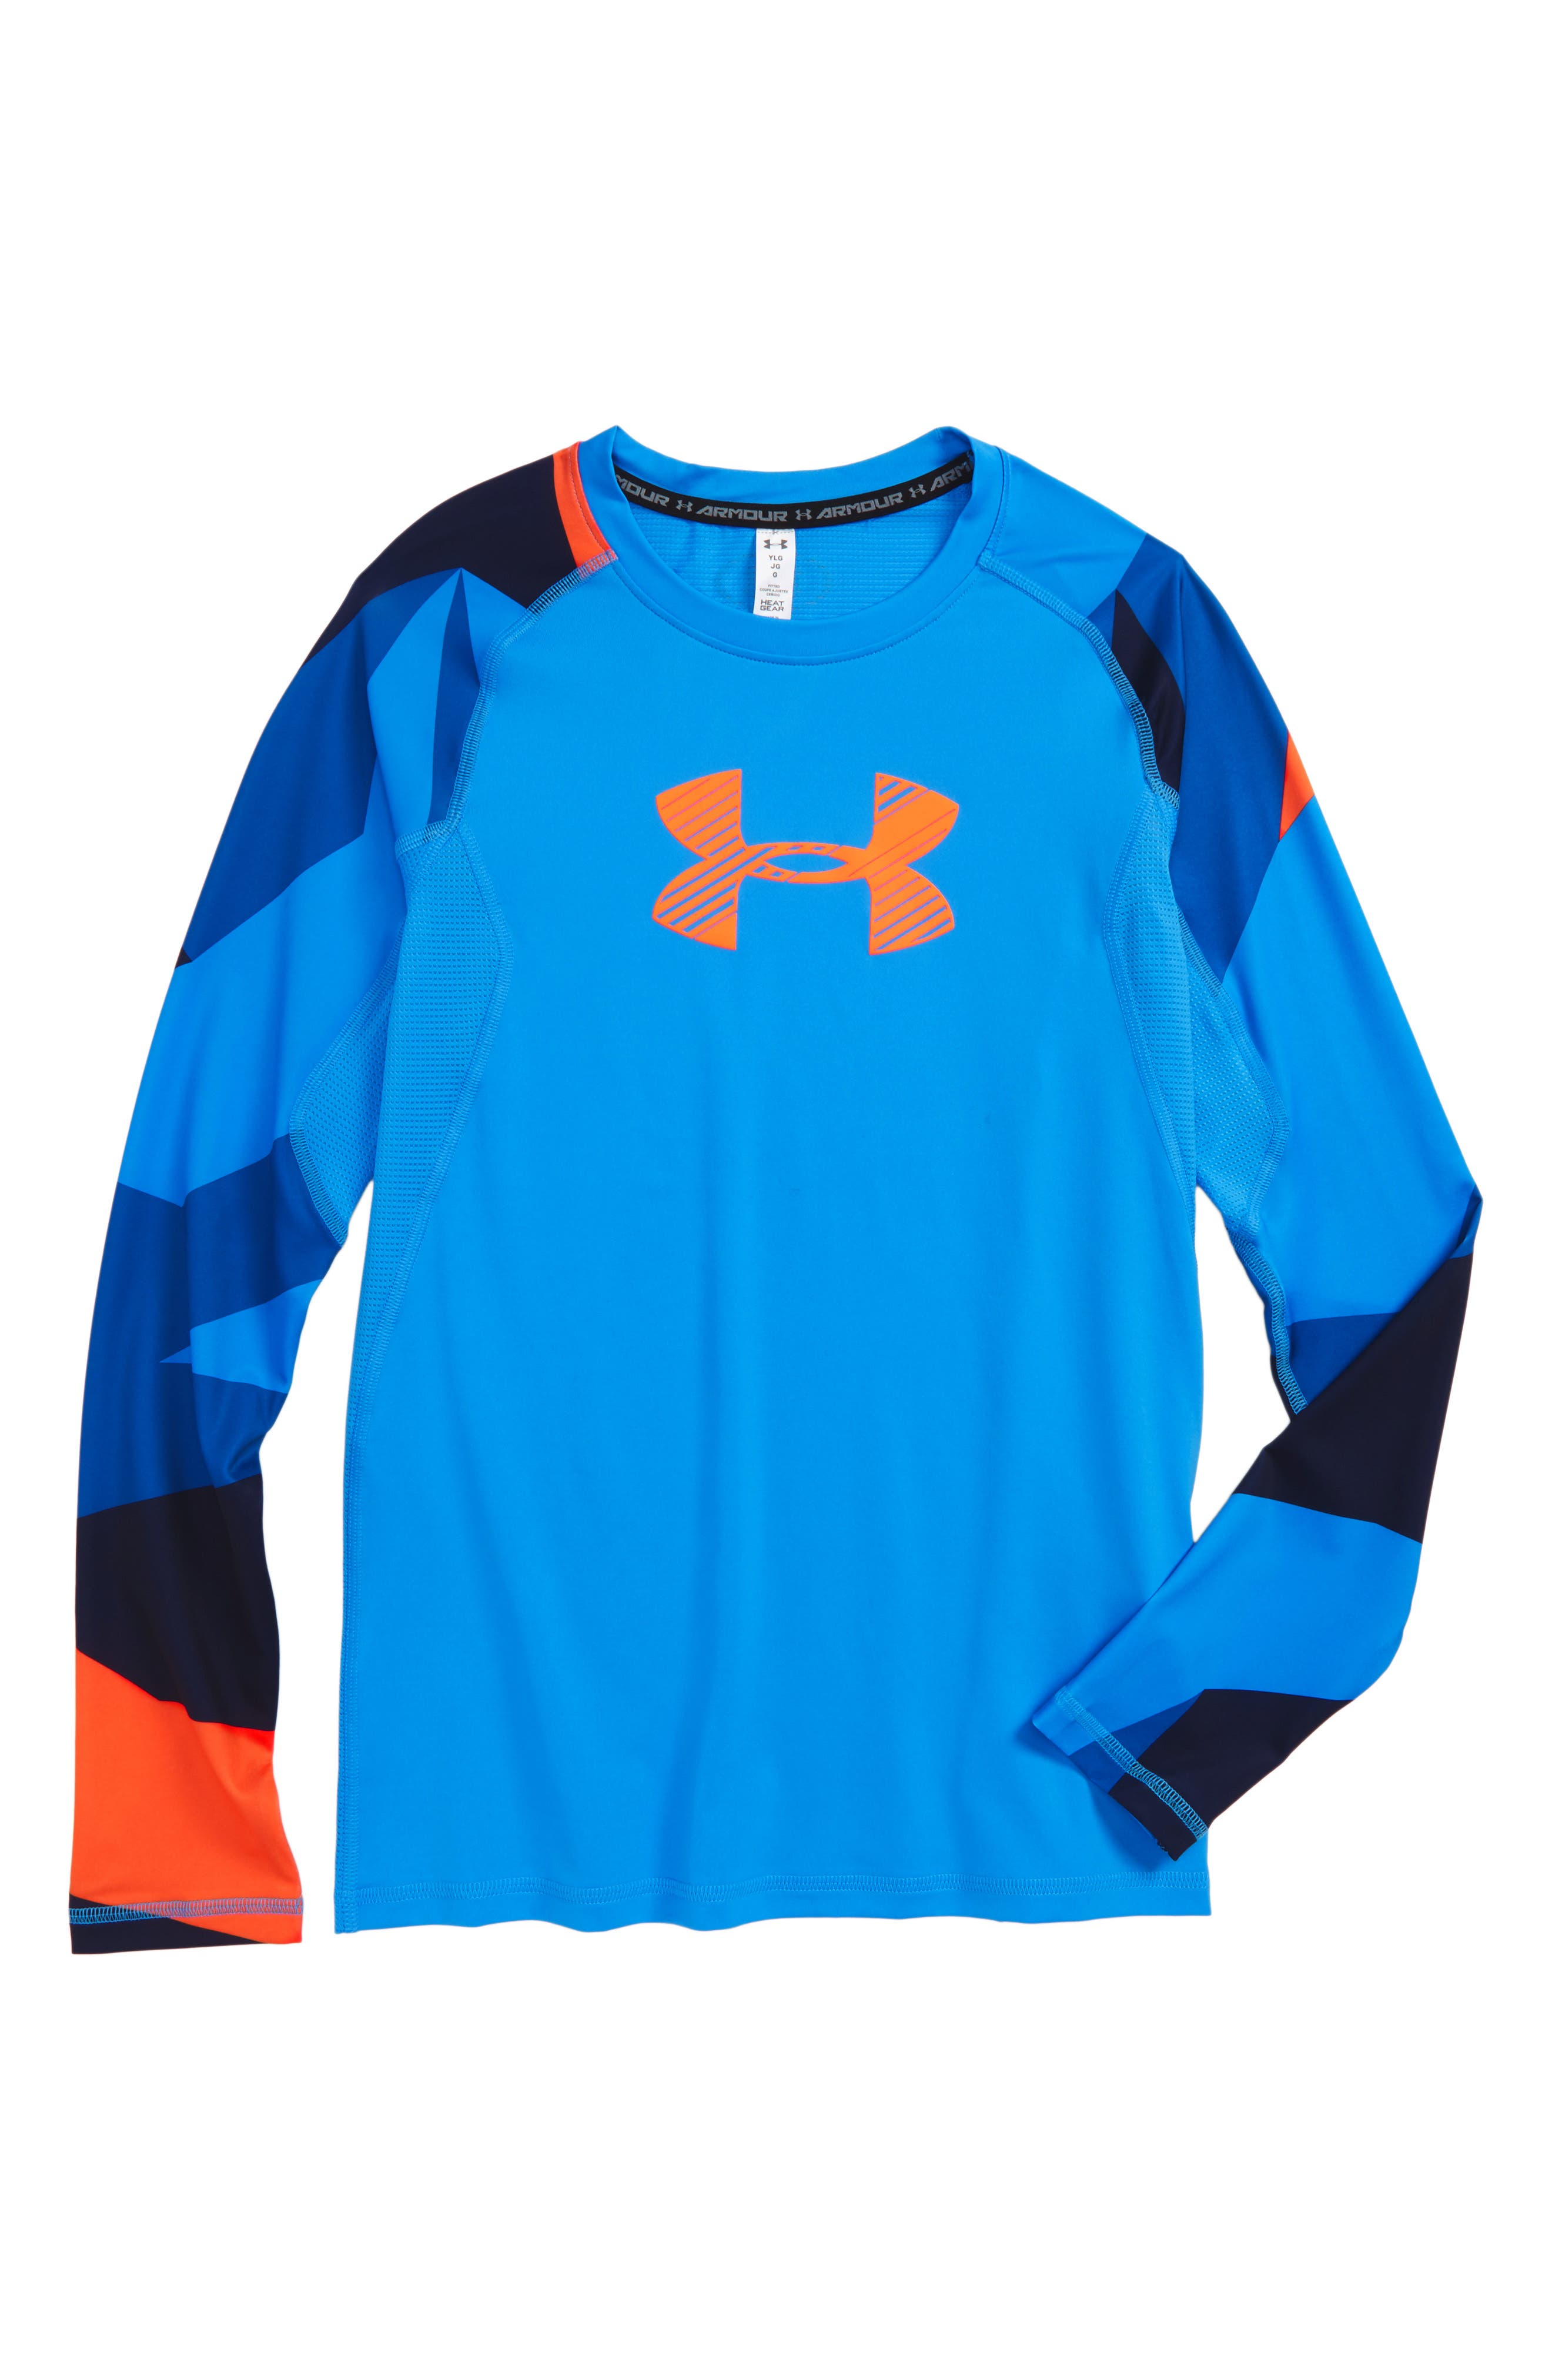 Novelty HeatGear<sup>®</sup> Shirt,                             Main thumbnail 1, color,                             Blue/ Magma Orange